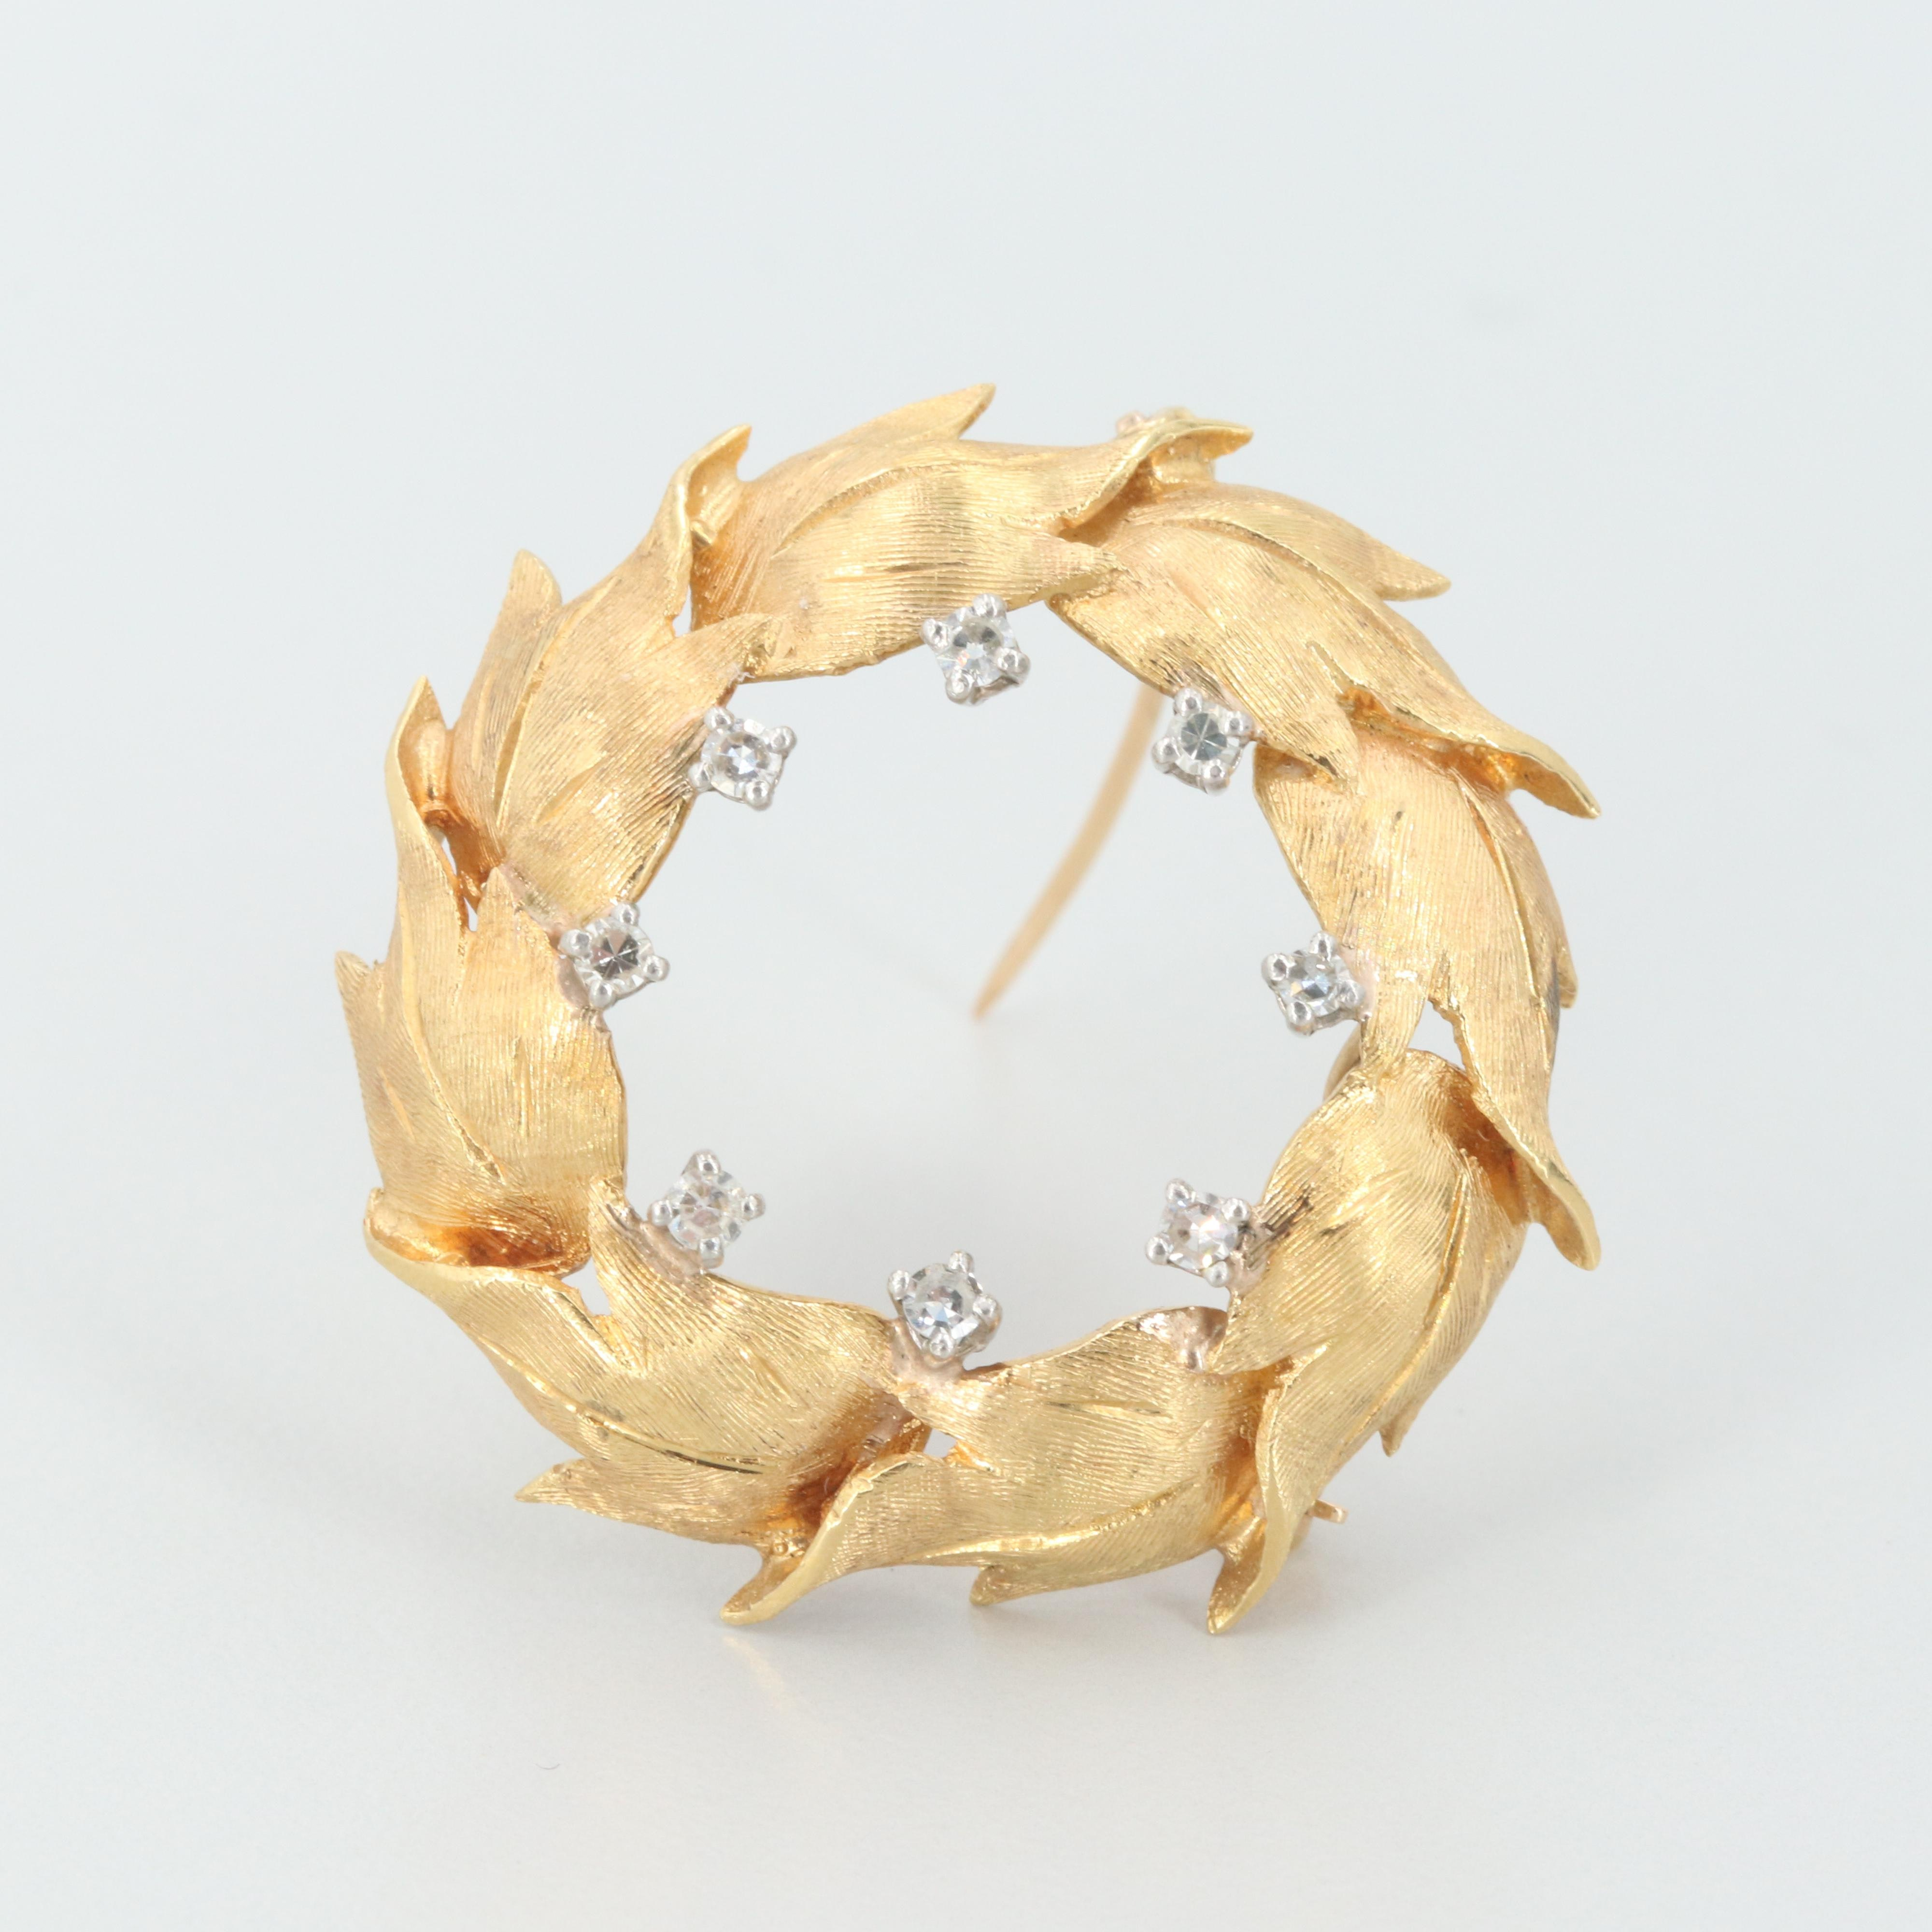 18K and 14K Yellow Gold Diamond Leaf Converter Brooch